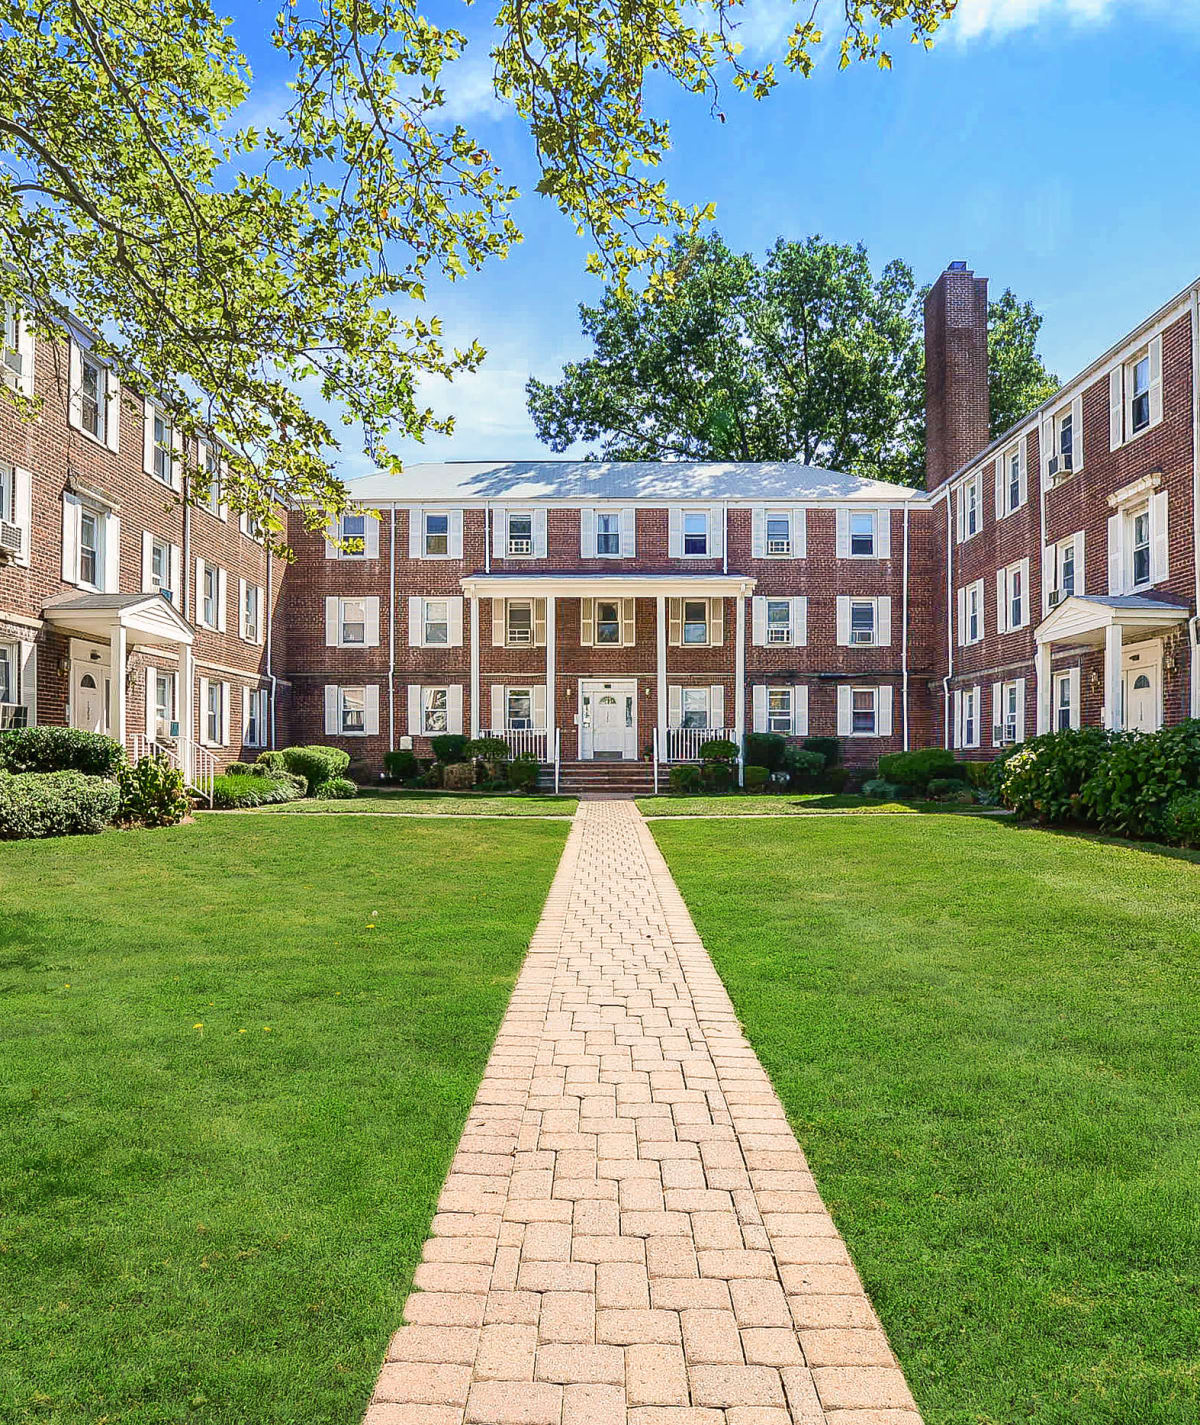 Apartments in Highland Park, NJ near New Brunswick | Harper